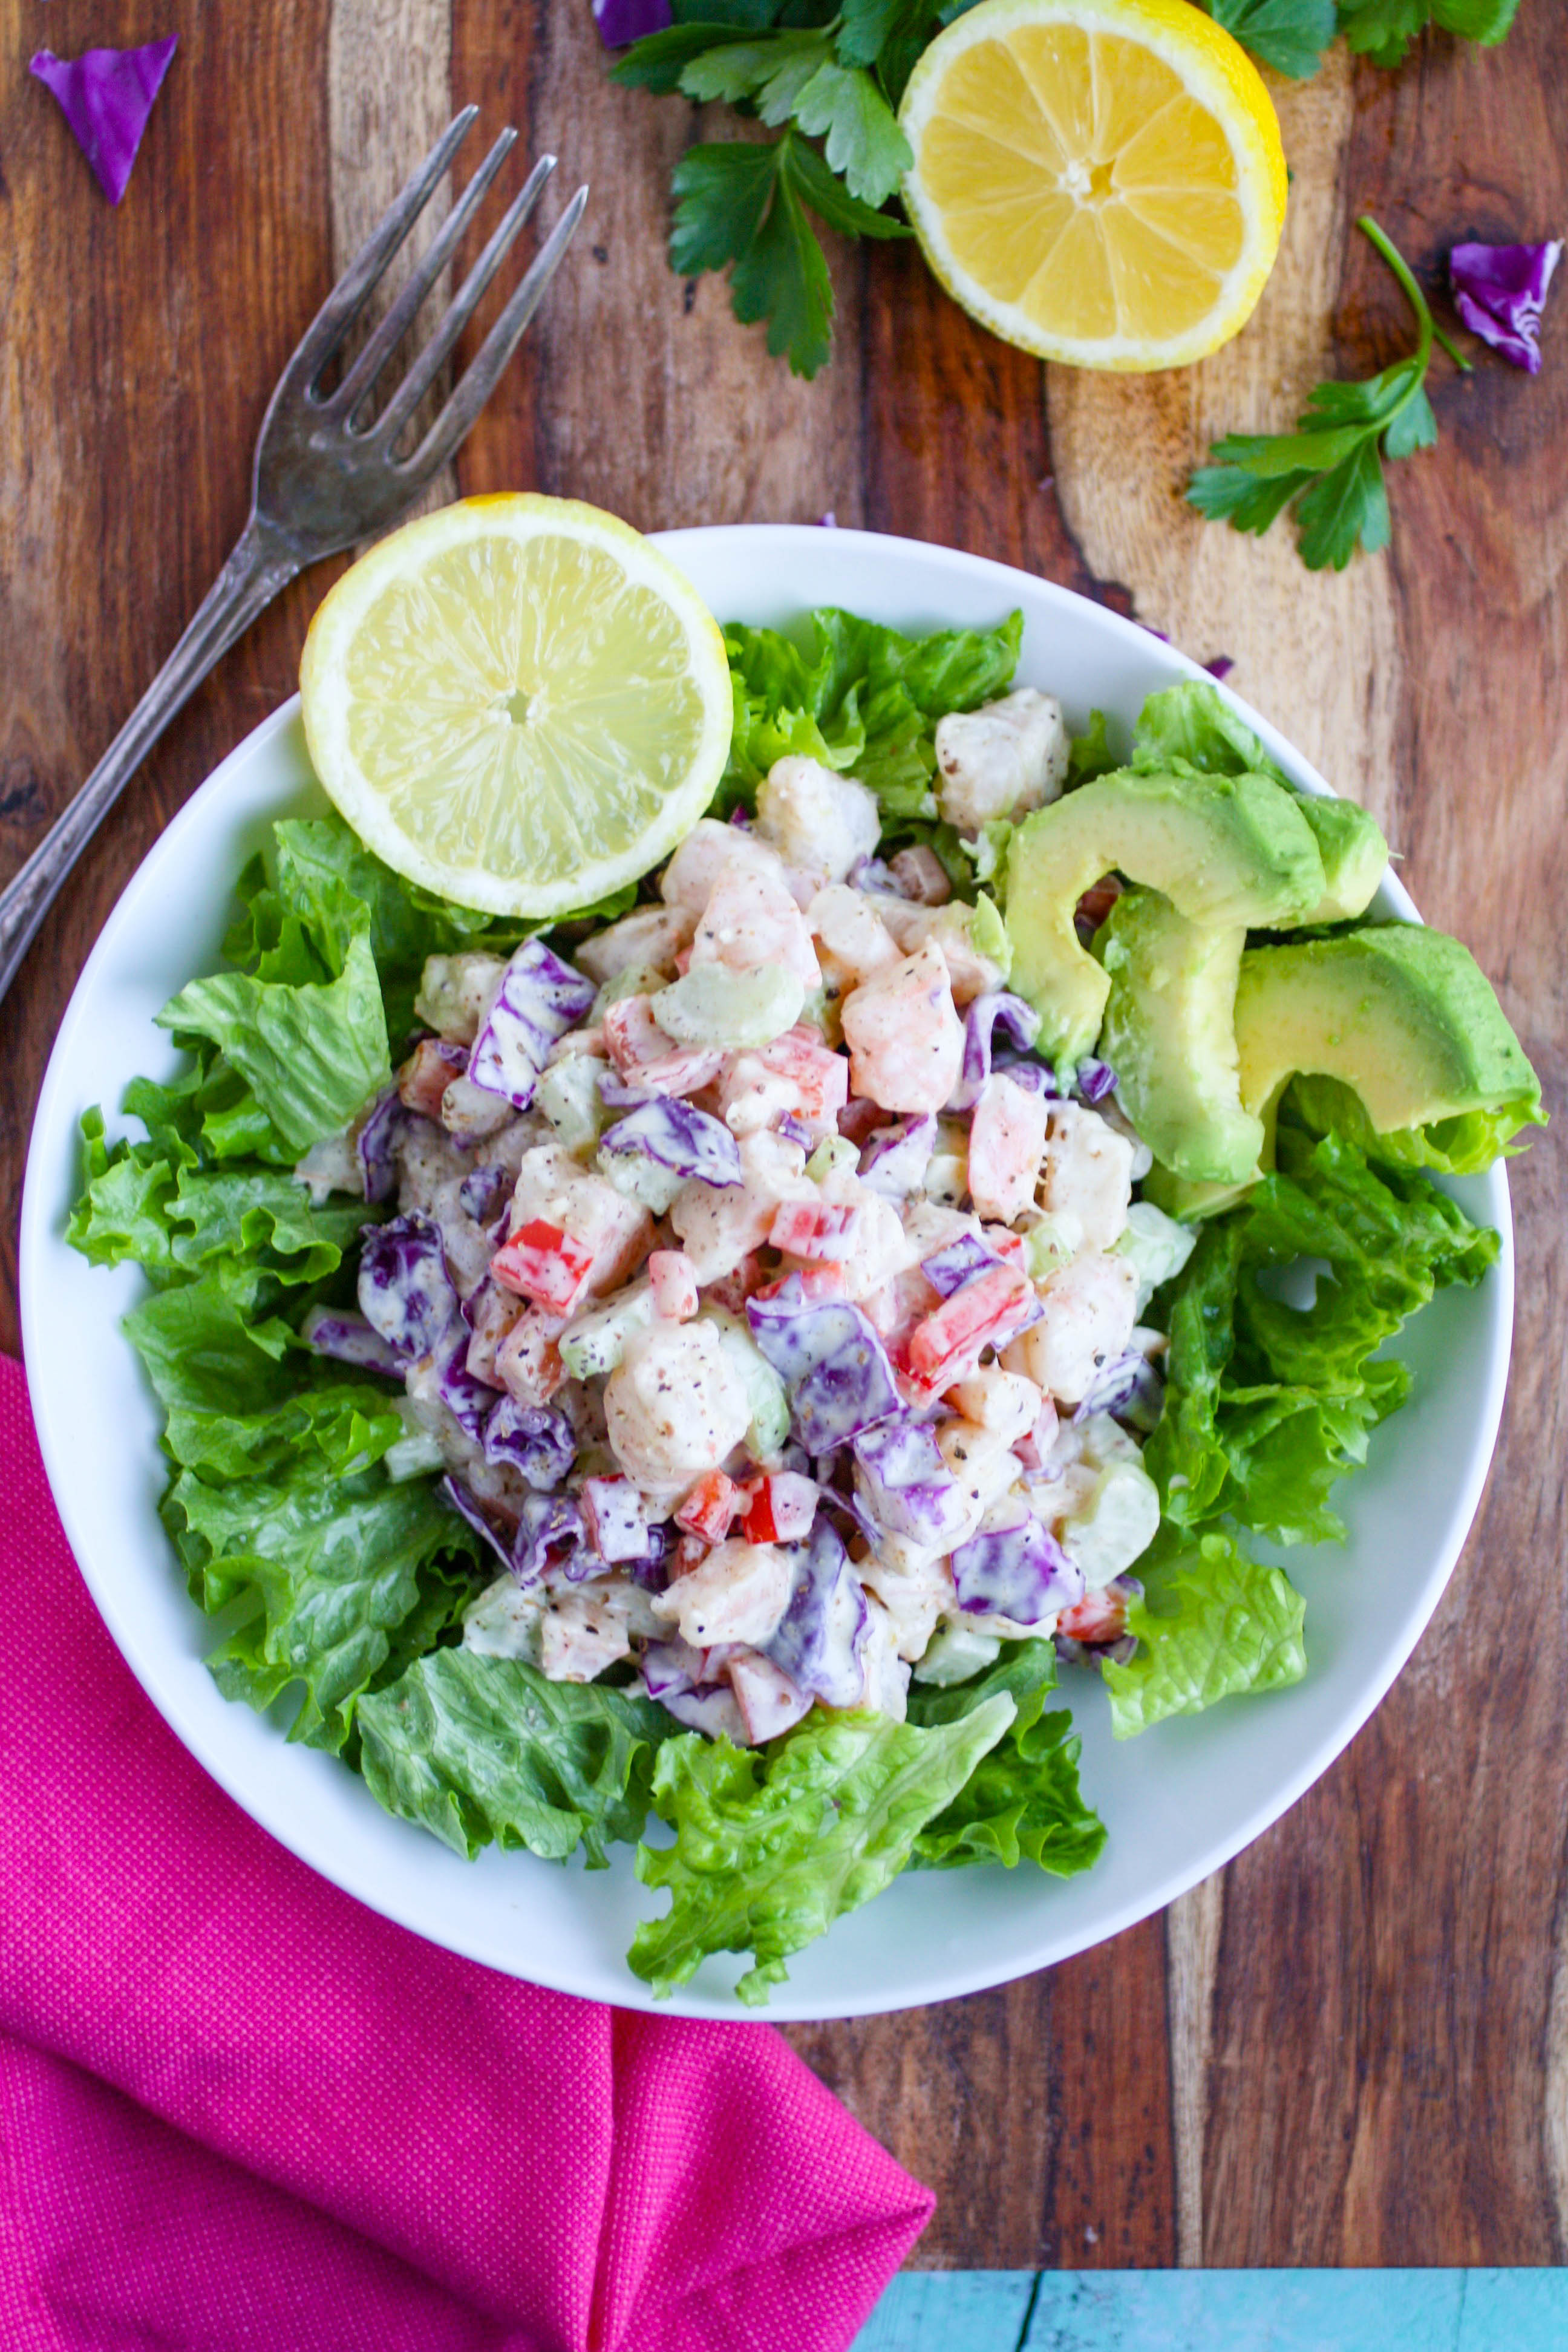 Chopped Shrimp Remoulade Salad is one you'll want to dig into! Chopped Shrimp Remoulade Salad is zesty and tasty -- you'll love it!